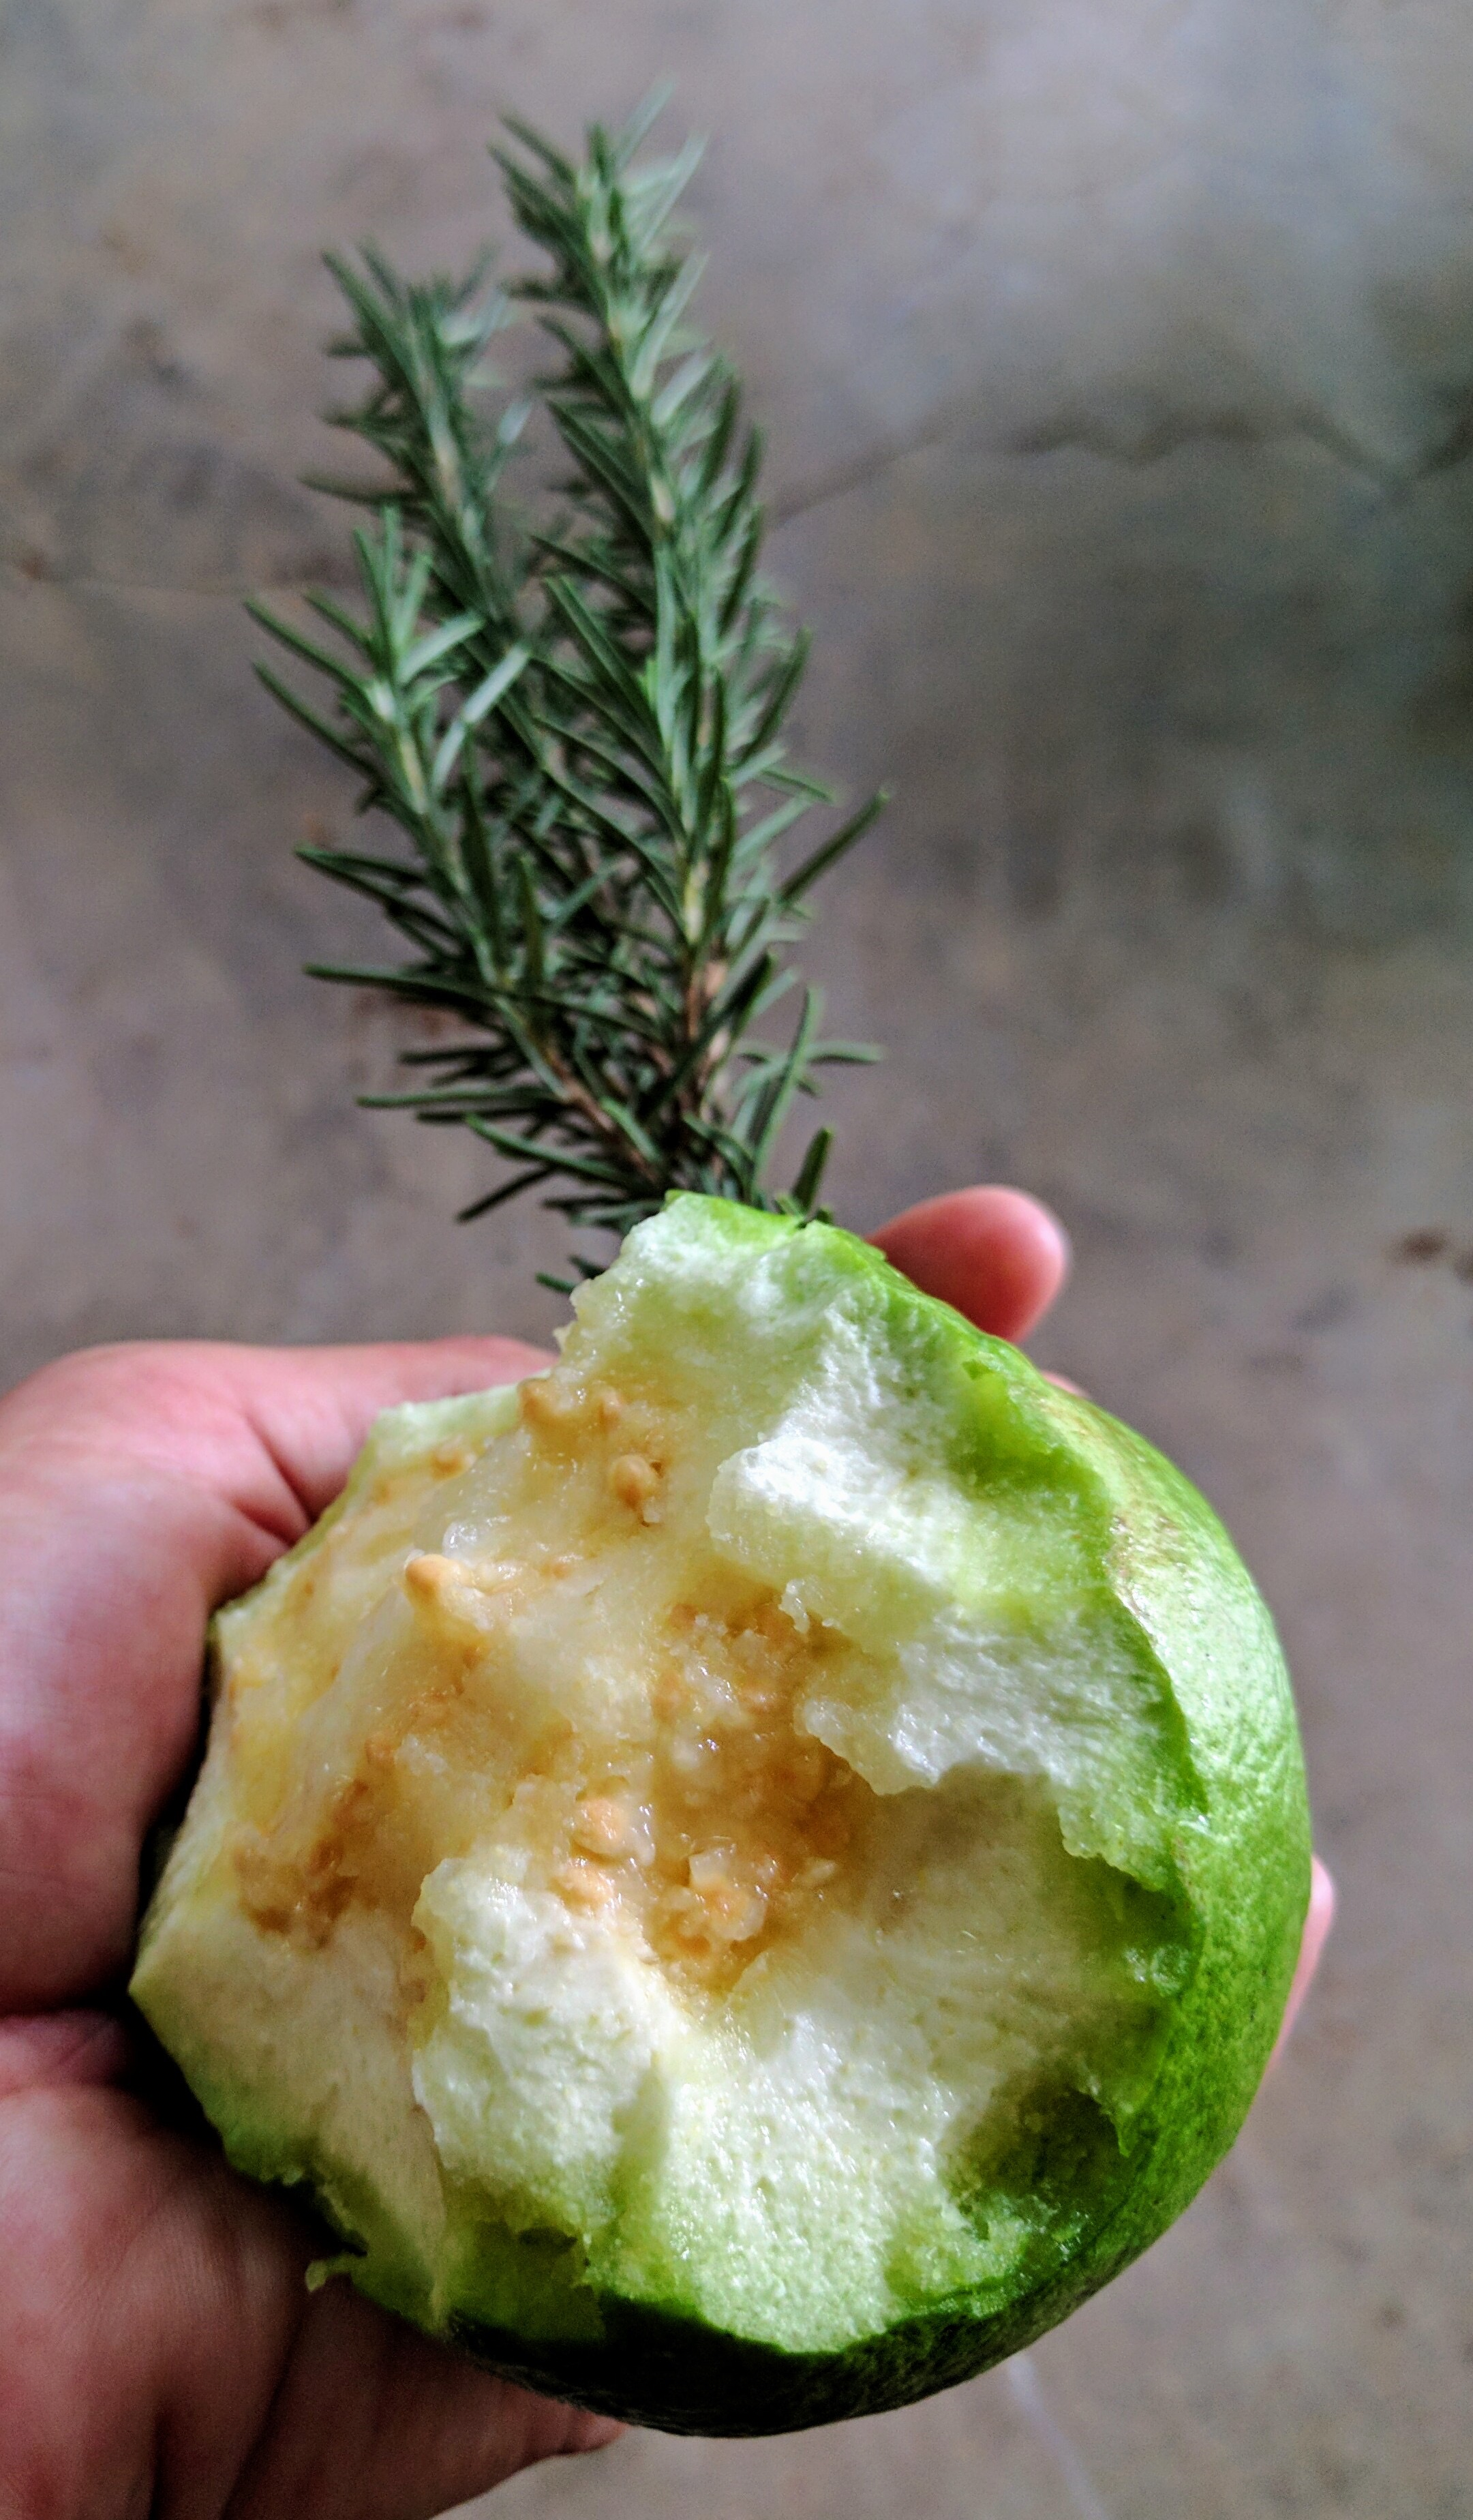 Farm_Apple Guava Fruit.jpg